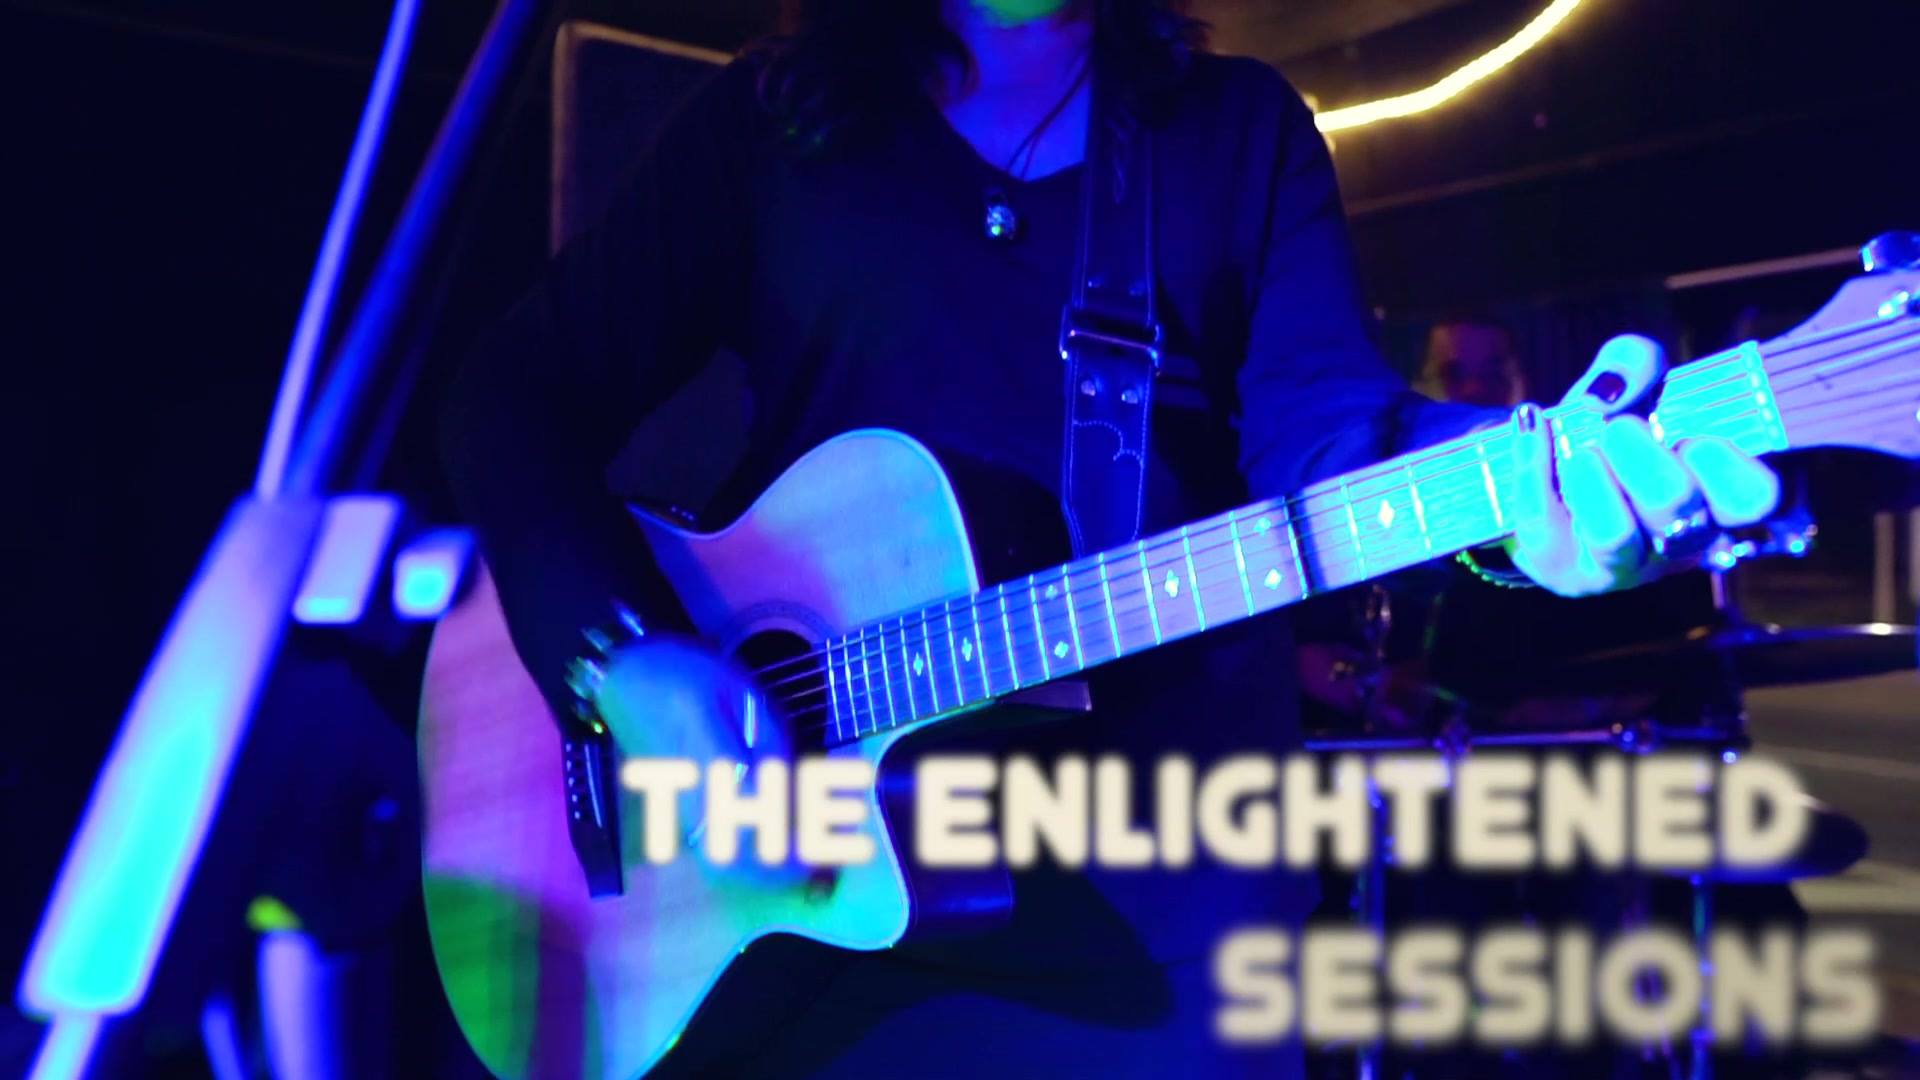 The Enlightened Sessions: Stephanie Hall & The Attitude